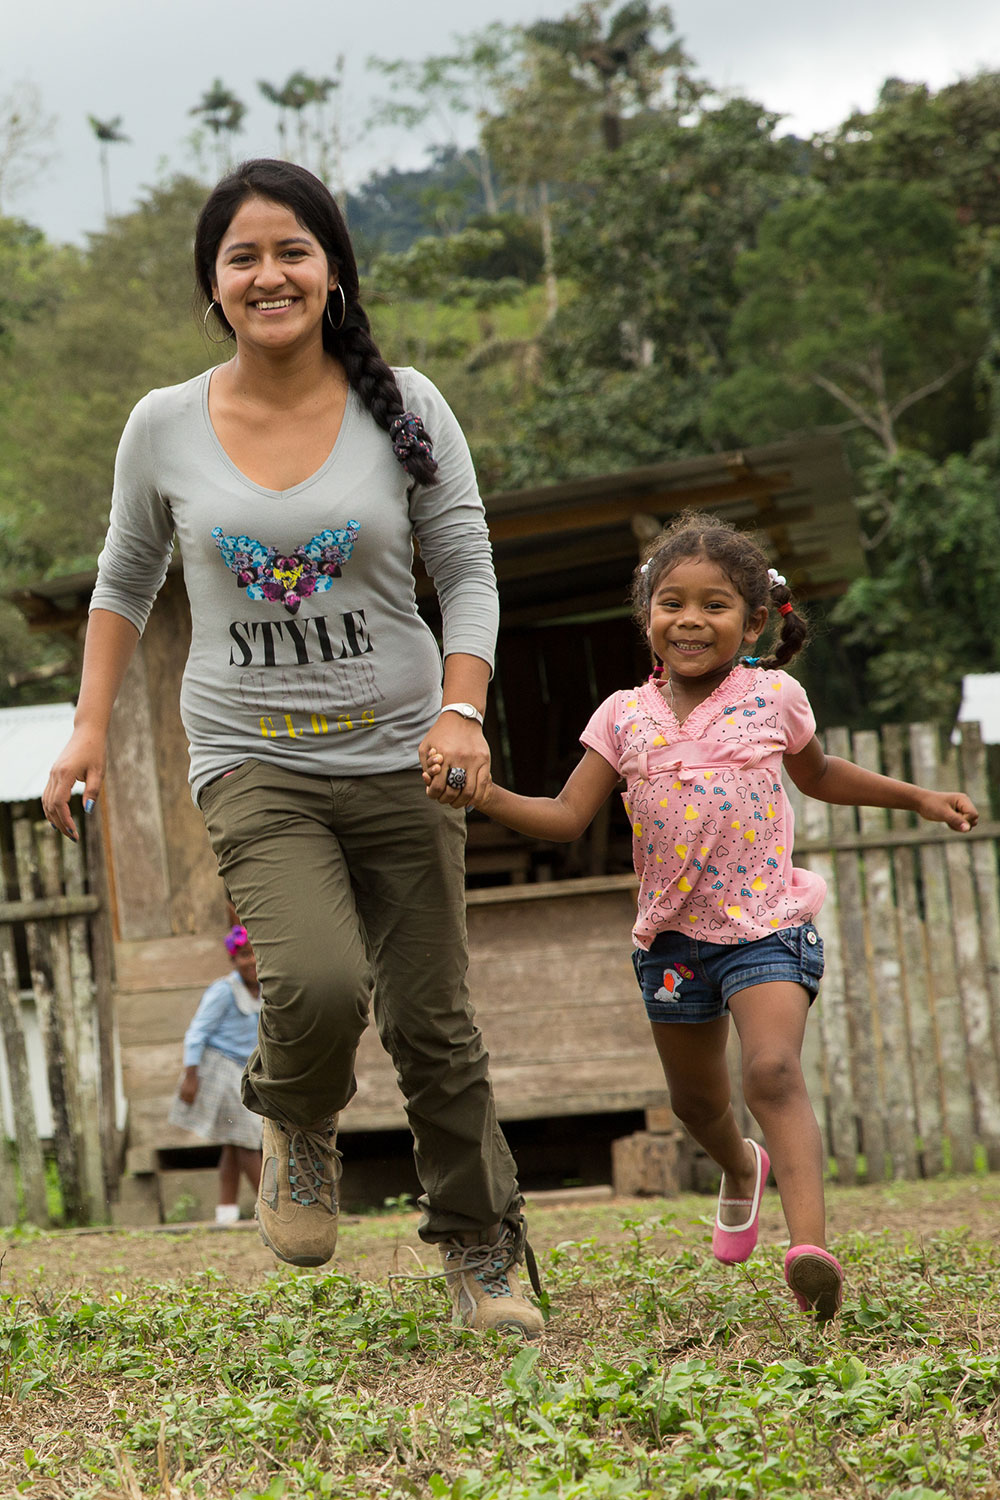 A woman and a young girl hold hands while running